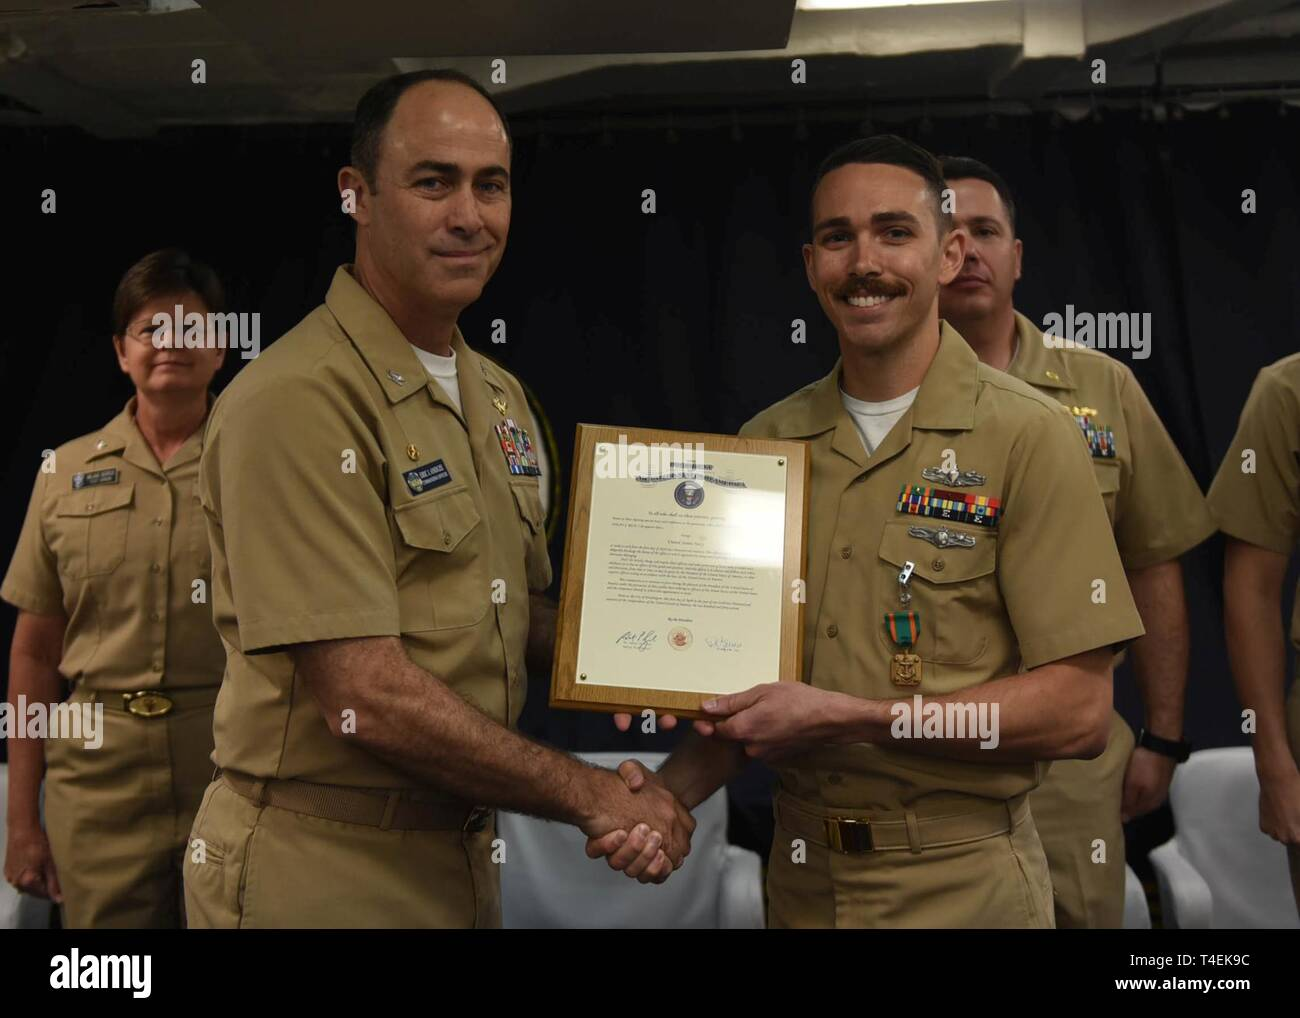 SOUTH CHINA SEA (April 1, 2019) - Ensign Dylan J. Rich, from St. Clair Shores, Mich., poses for a picture with U.S. 7th Fleet Flagship USS Blue Ridge (LCC 19) Commanding Officer Capt. Eric J. Anduze, during his commissioning ceremony. Rich, a former hospital corpsman 1st class, was commissioned through the Navy's Health Service Collegiate Program. Blue Ridge is the oldest operational ship in the Navy, and as 7th Fleet command ship, is responsible for fostering relationships within the Indo-Pacific Region. - Stock Image